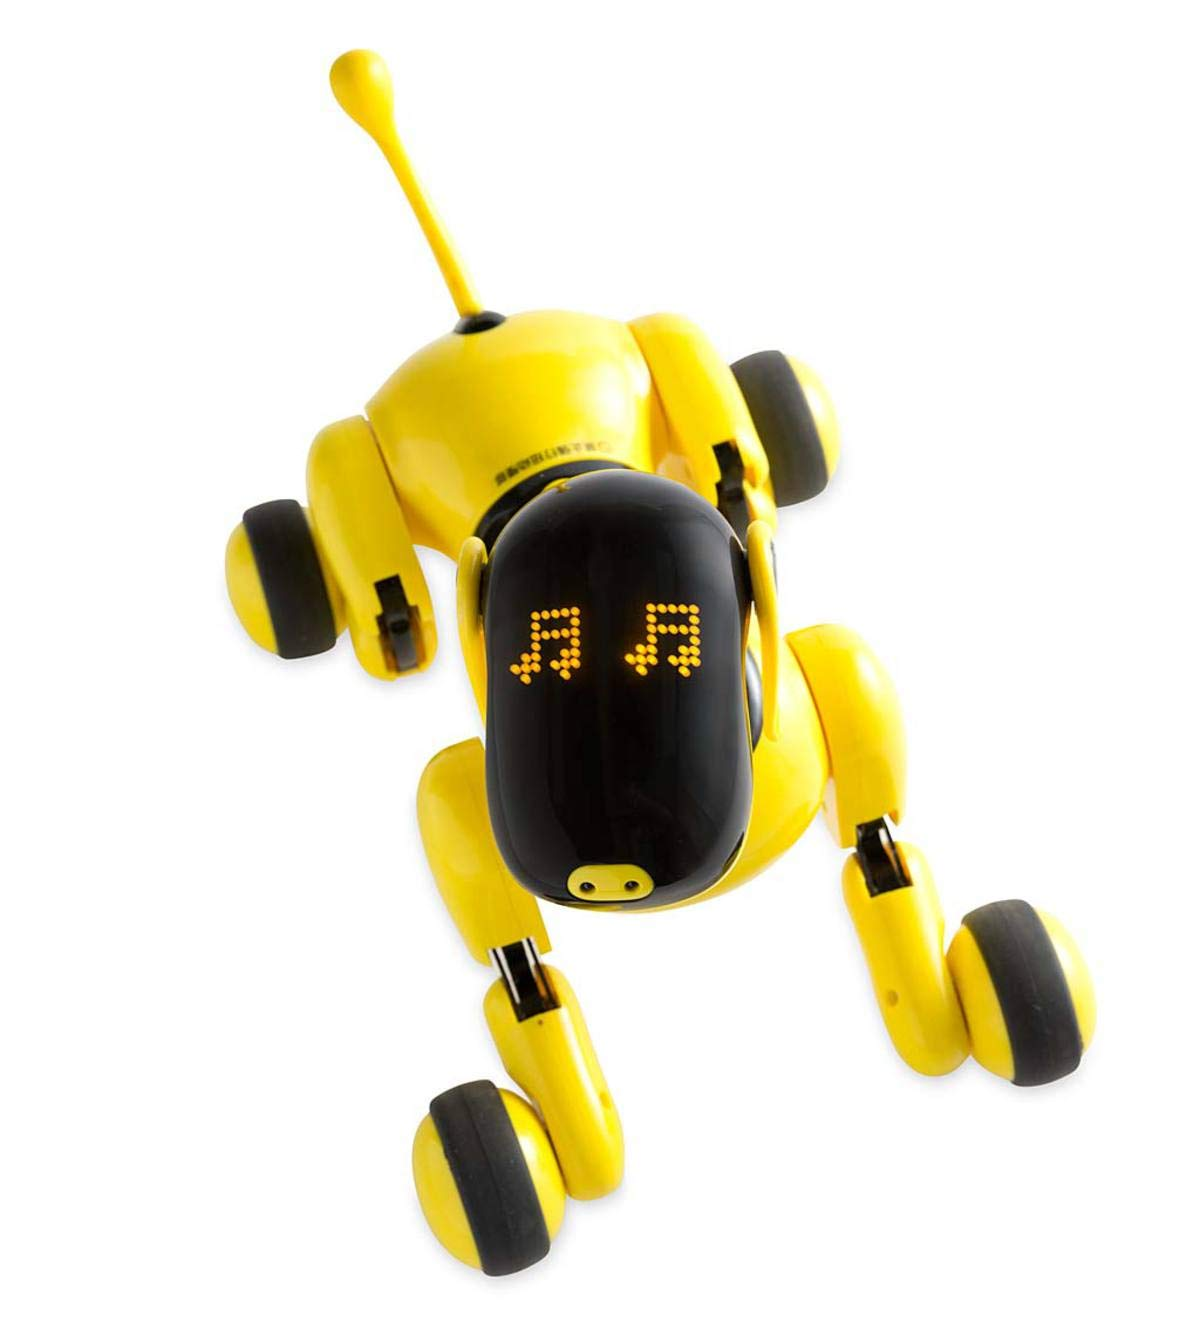 HearthSong Gizmo The Voice Controlled Robotic Dog - Electronic Pet Toy for Kids - 13 L x 5 W x 7'' H, Yellow by HearthSong (Image #6)